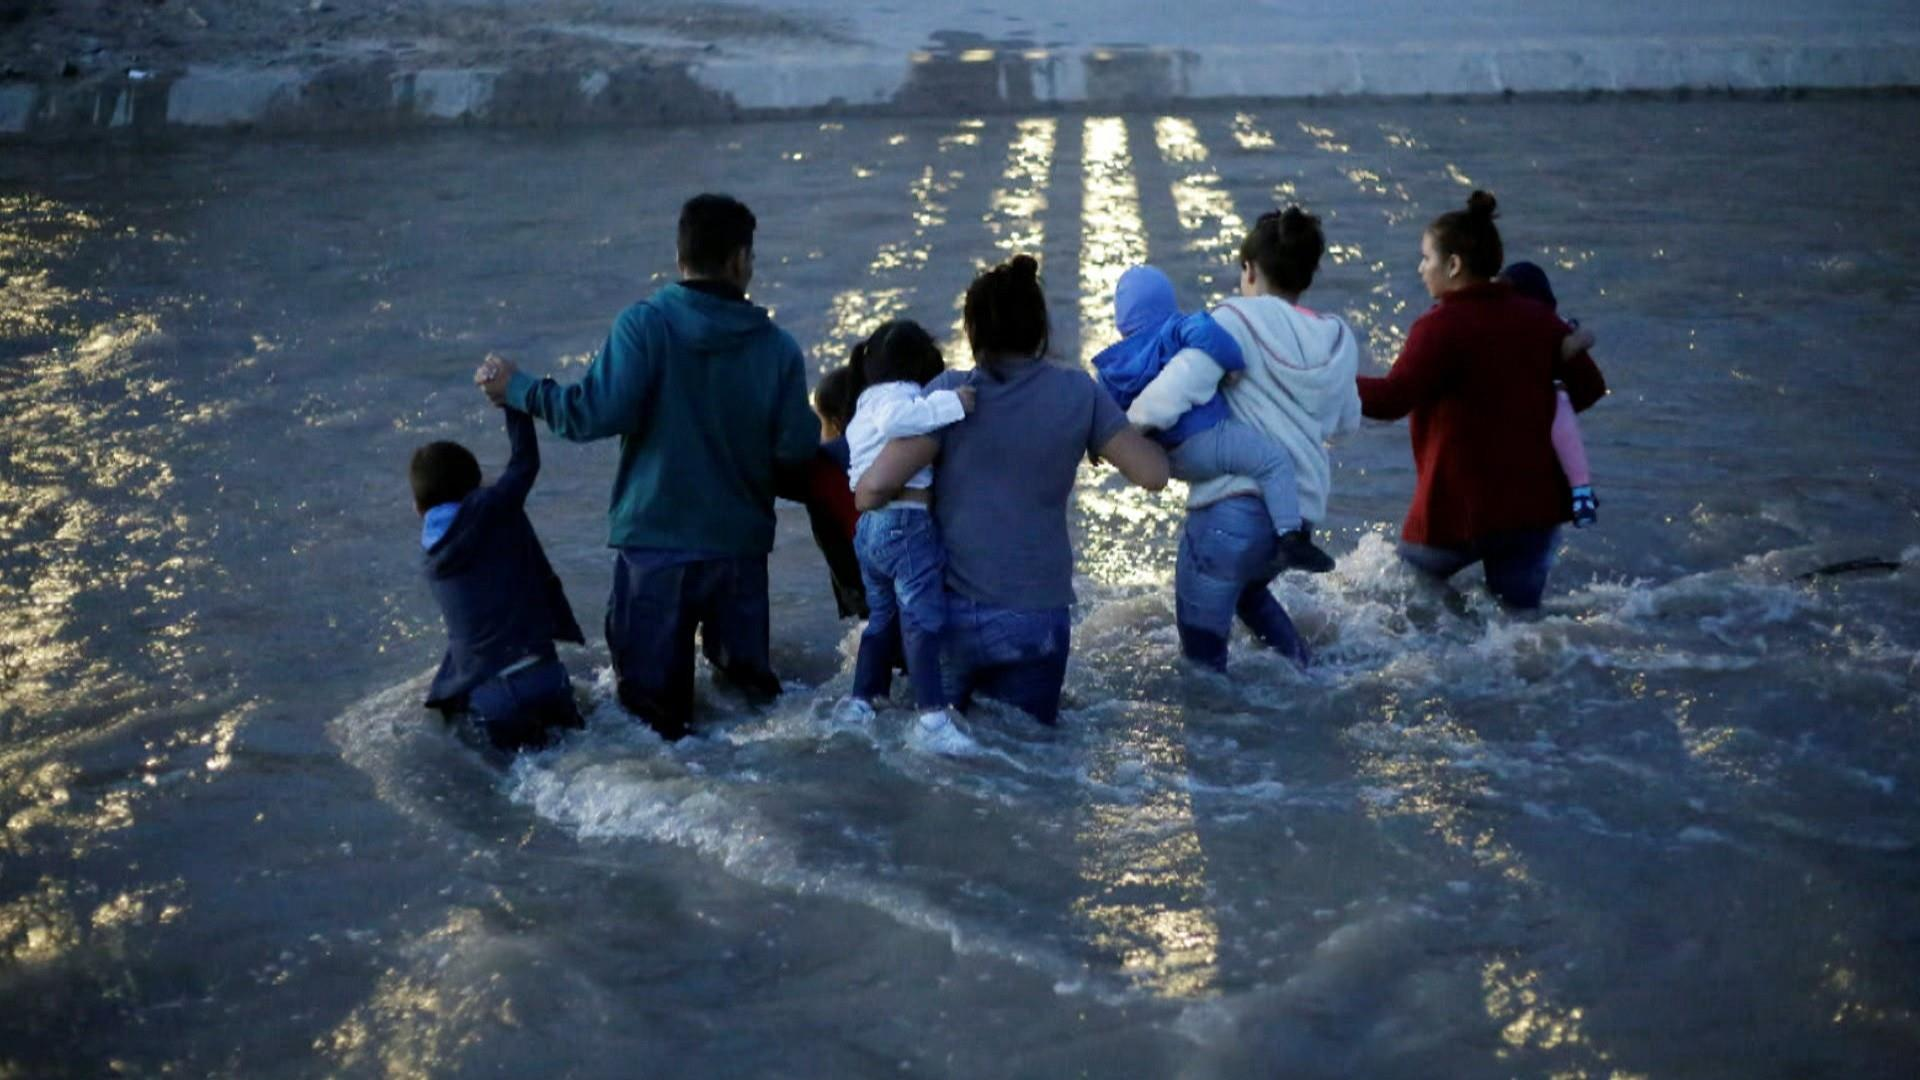 Congress in immigration gridlock after viral photo of drowned migrants